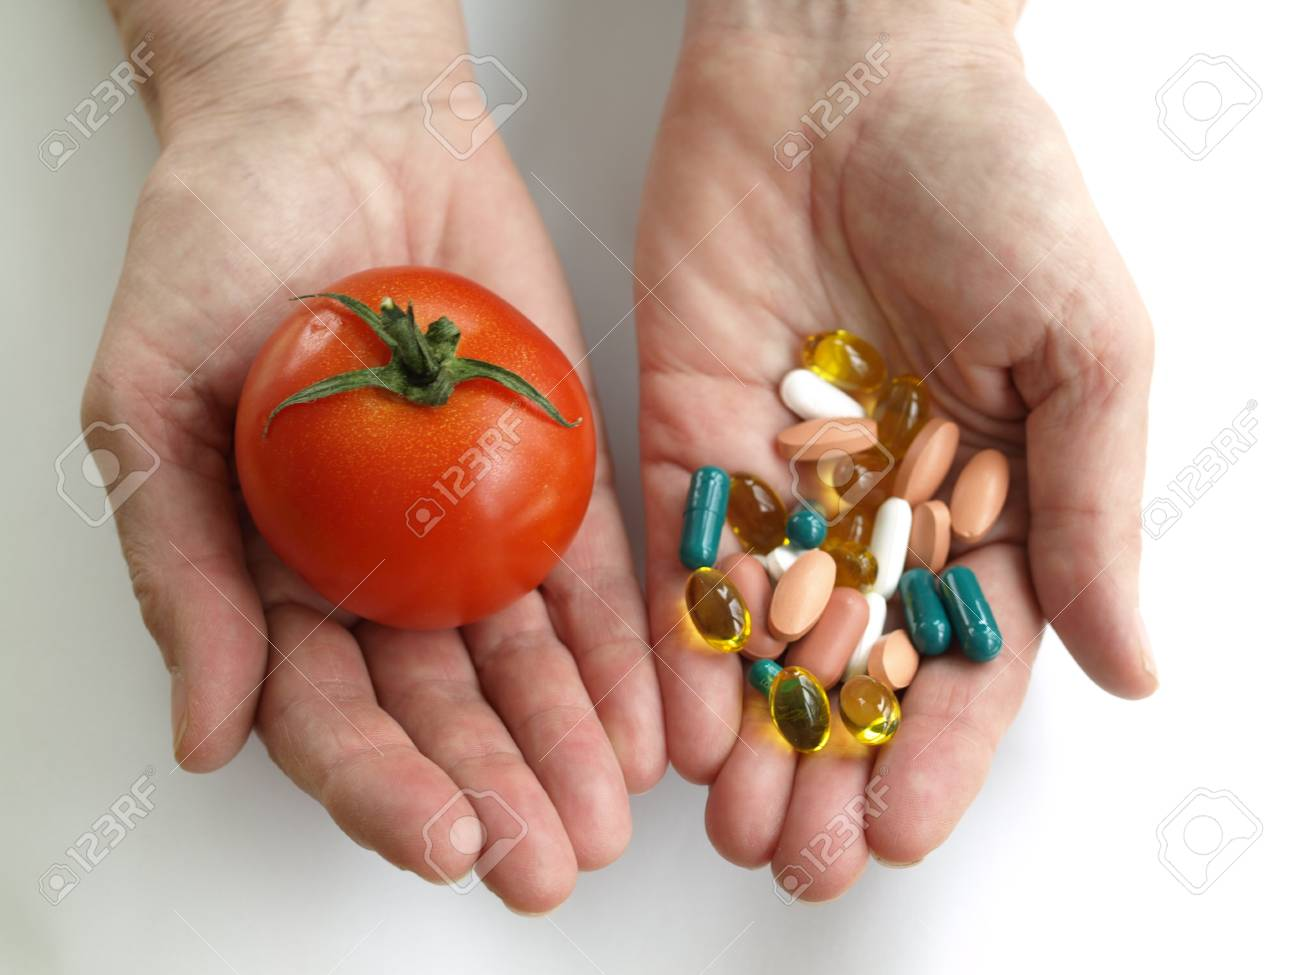 Man holding a vegetable and handfull of supplements - 13318343